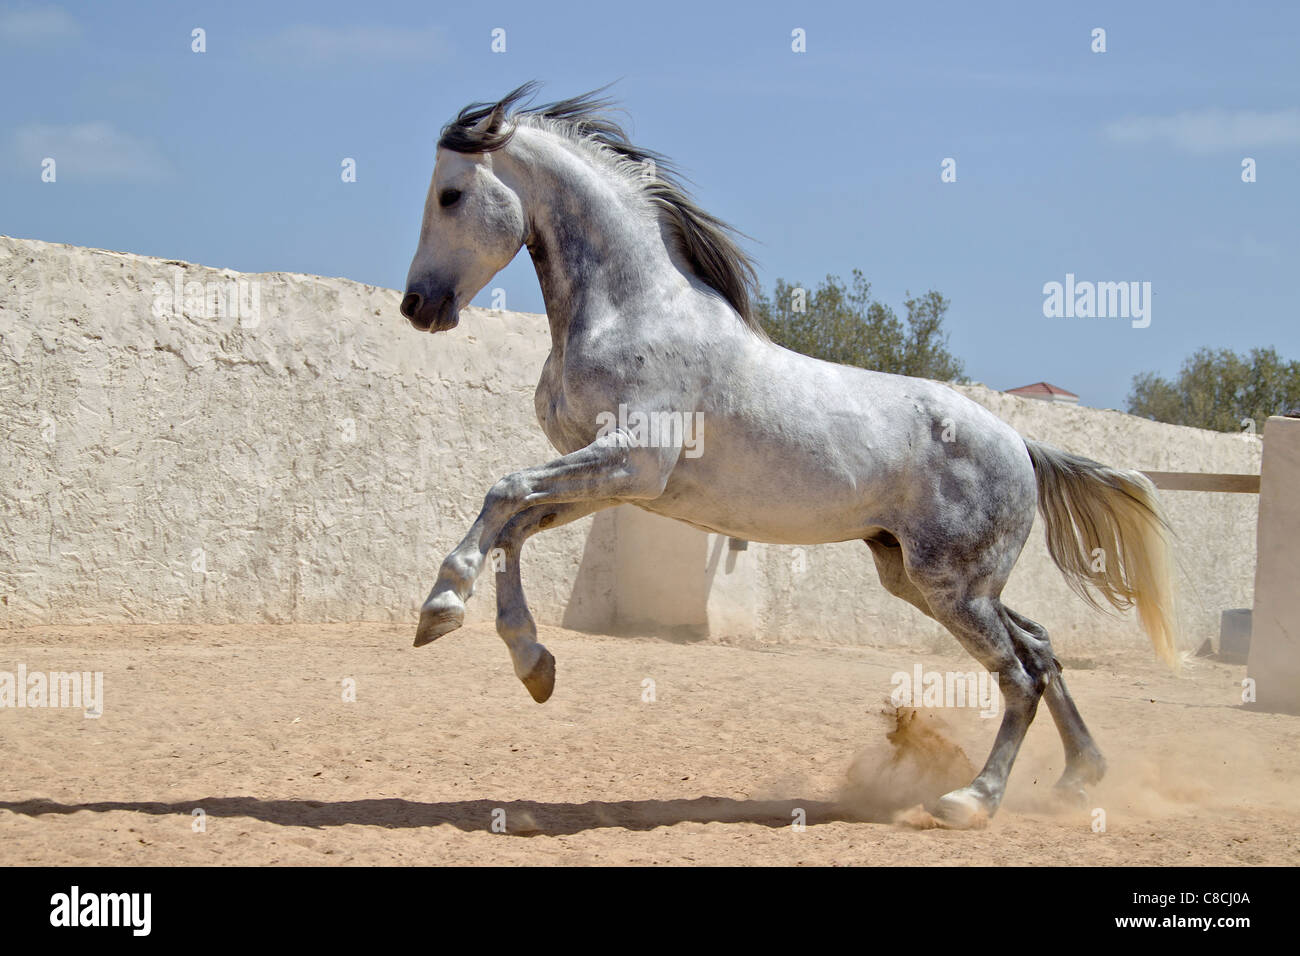 Arabian Horse Gray Stallion Galloping In A Paddock Tunesia Stock Photo Alamy